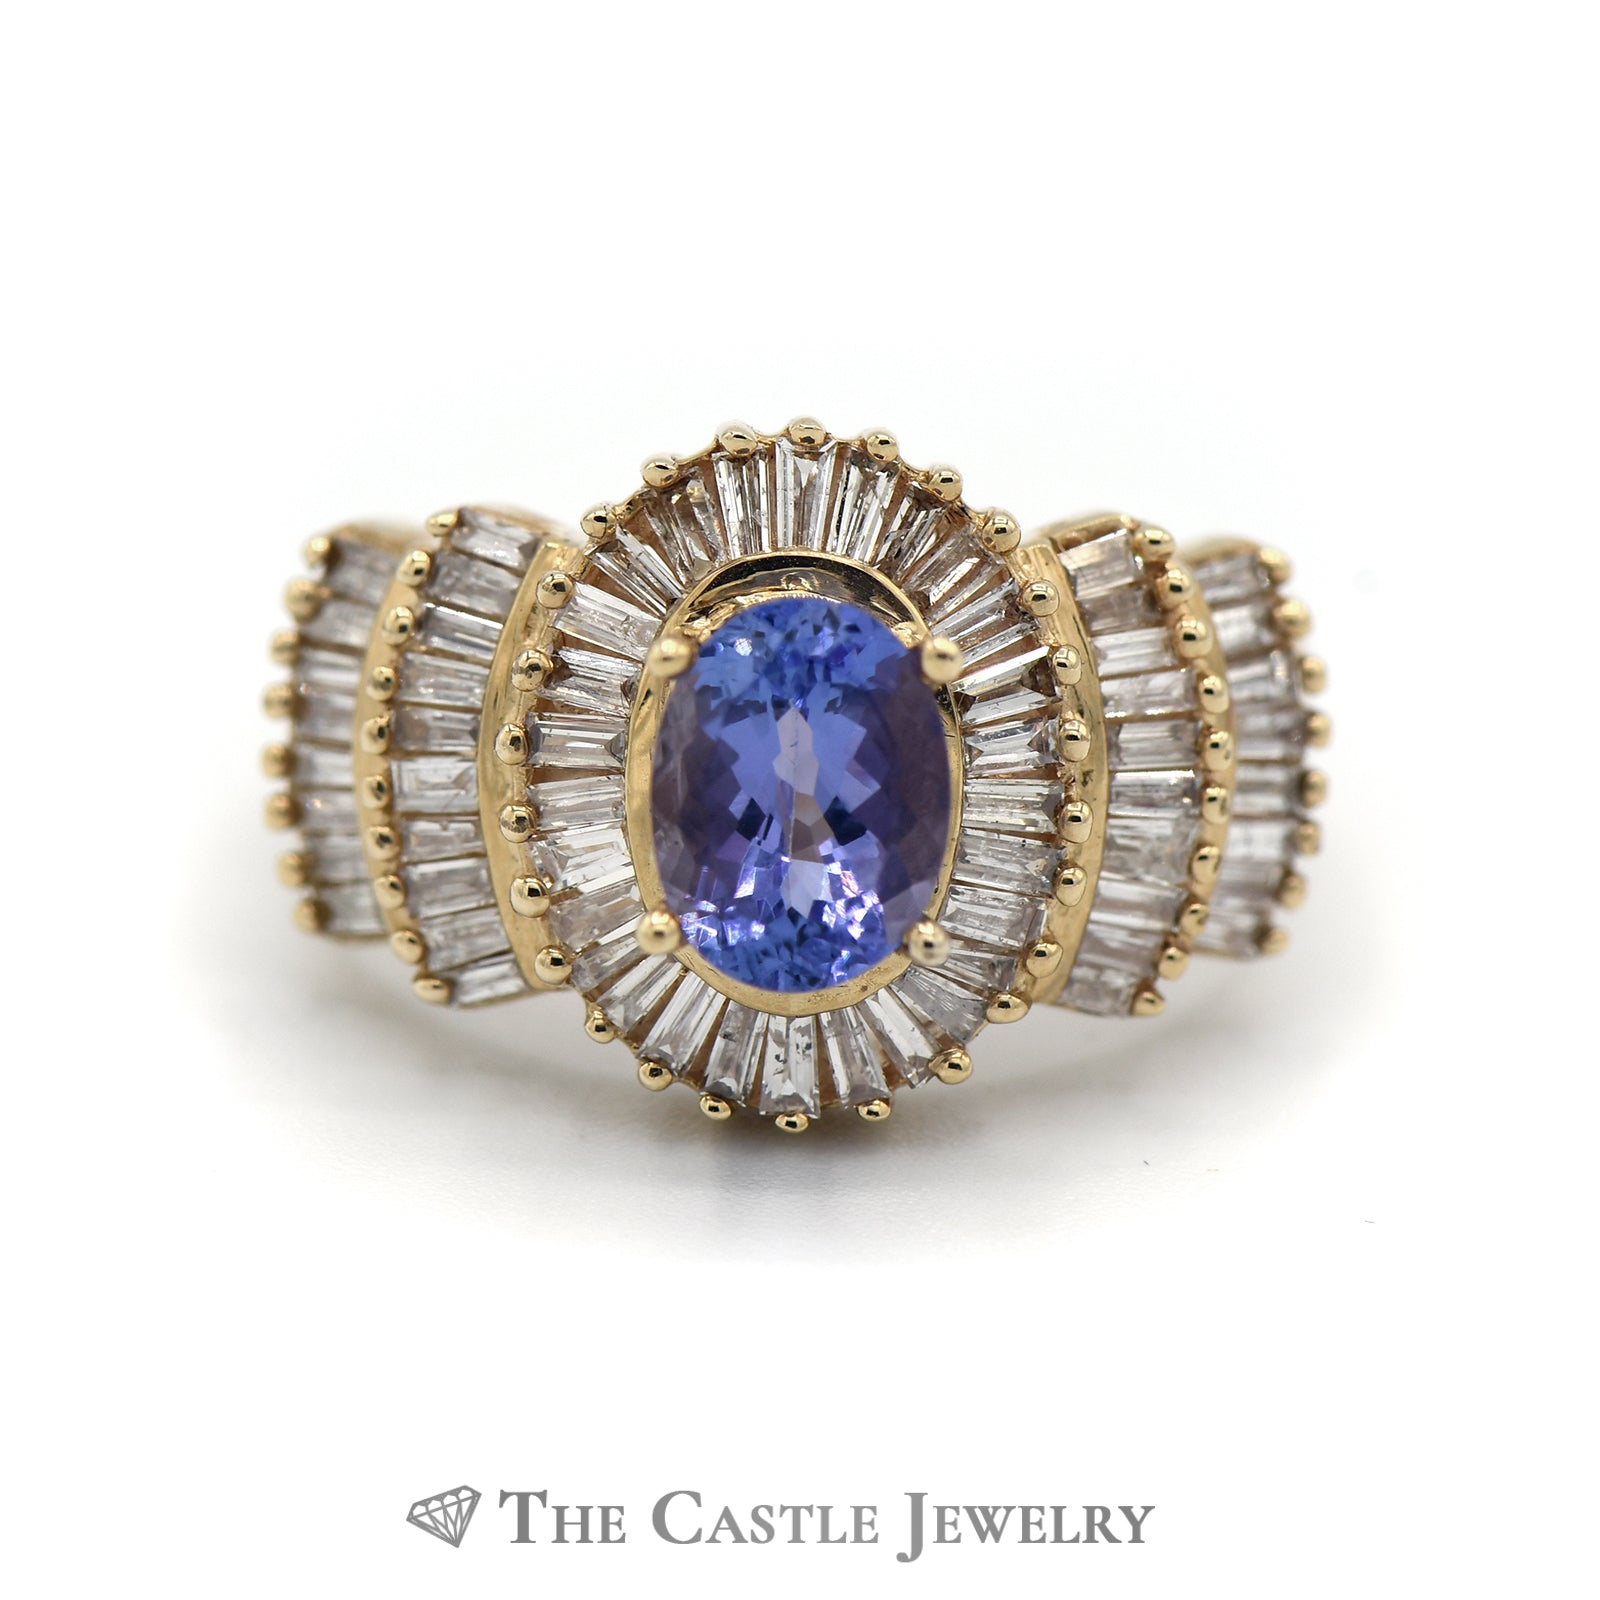 Oval Cut Tanzanite Ring with 1.5cttw Baguette Cut Diamond Halo & Accents